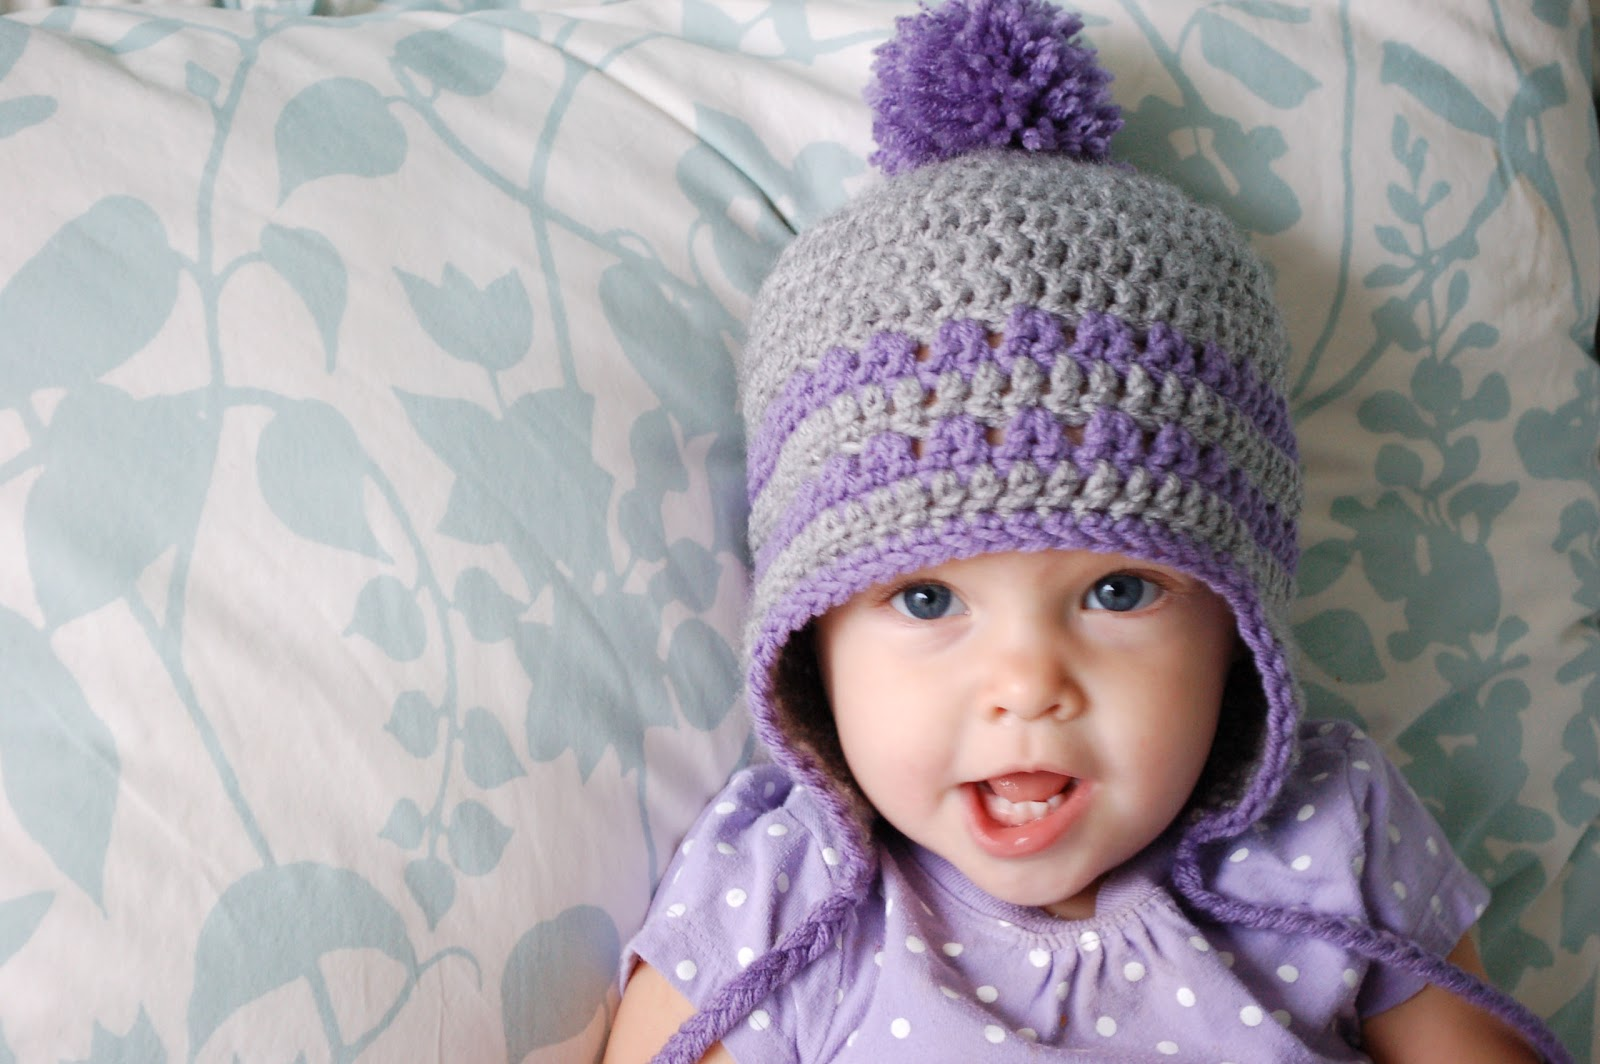 Free Crochet Pattern Toddler Earflap Hat : Alli Crafts: Free Pattern: Earflap Hat - 9-12 Months